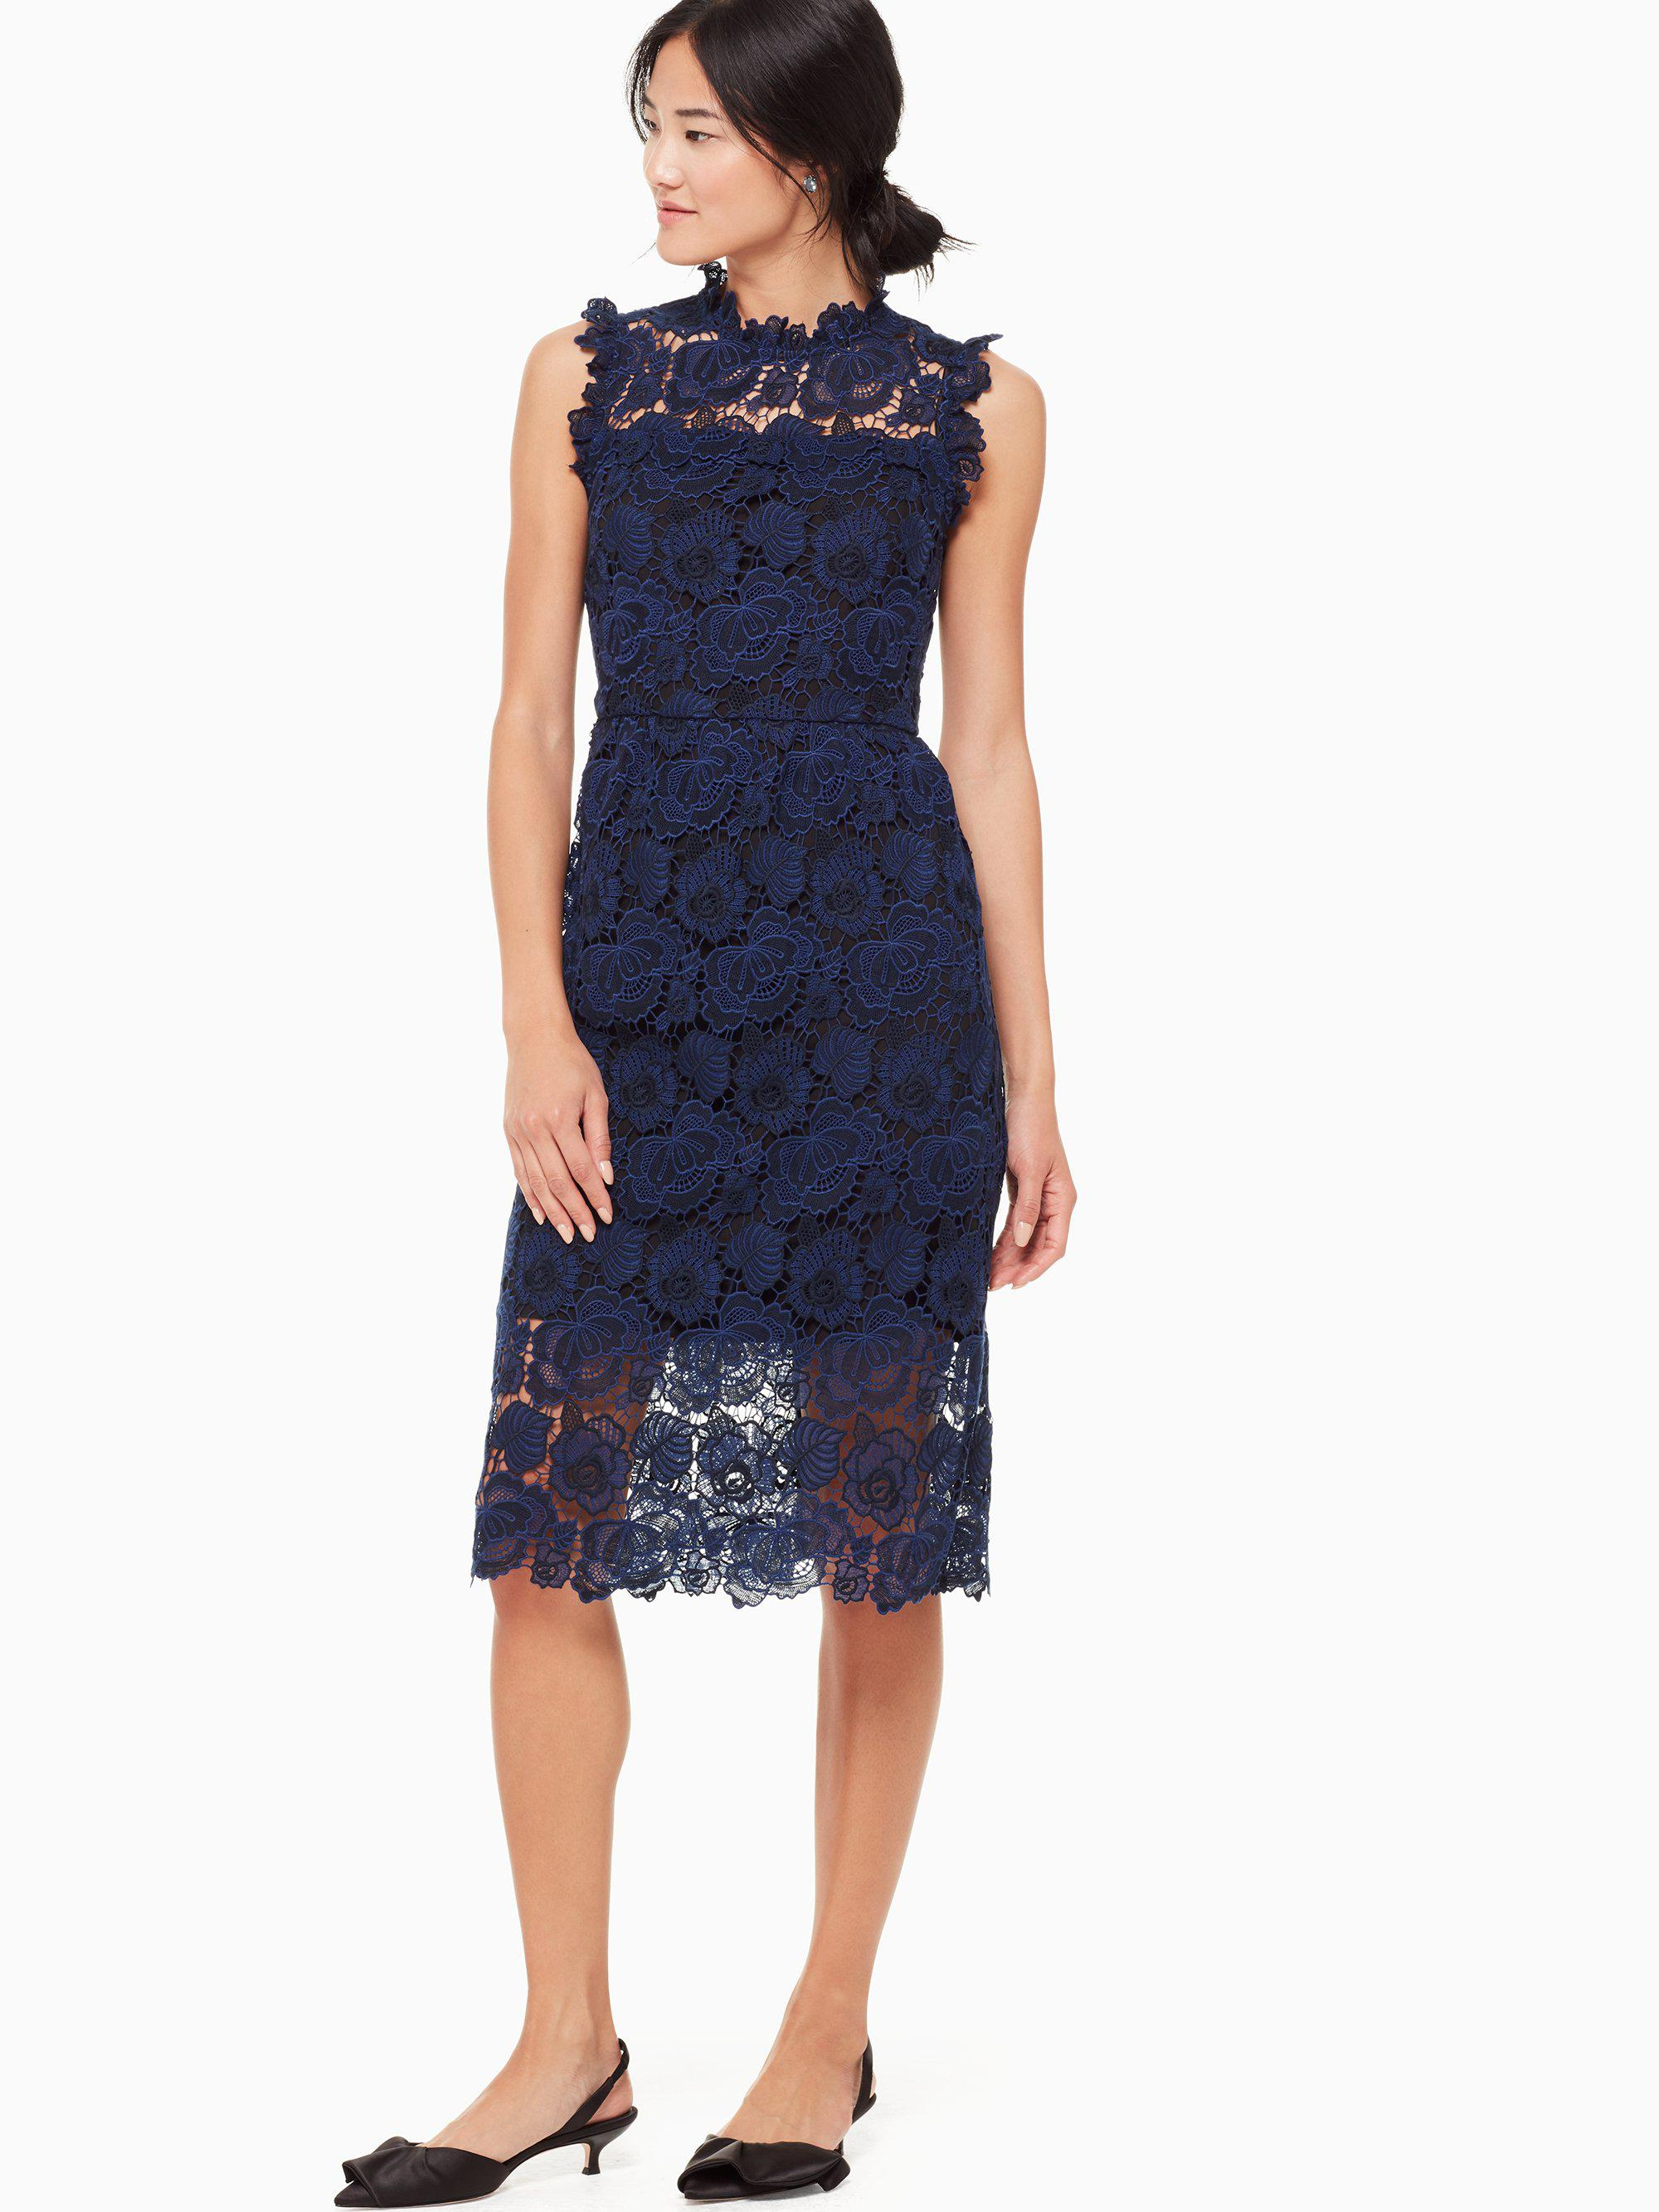 3915975c3c Lyst - Kate Spade Bi-color Floral Lace Dress in Blue - Save ...